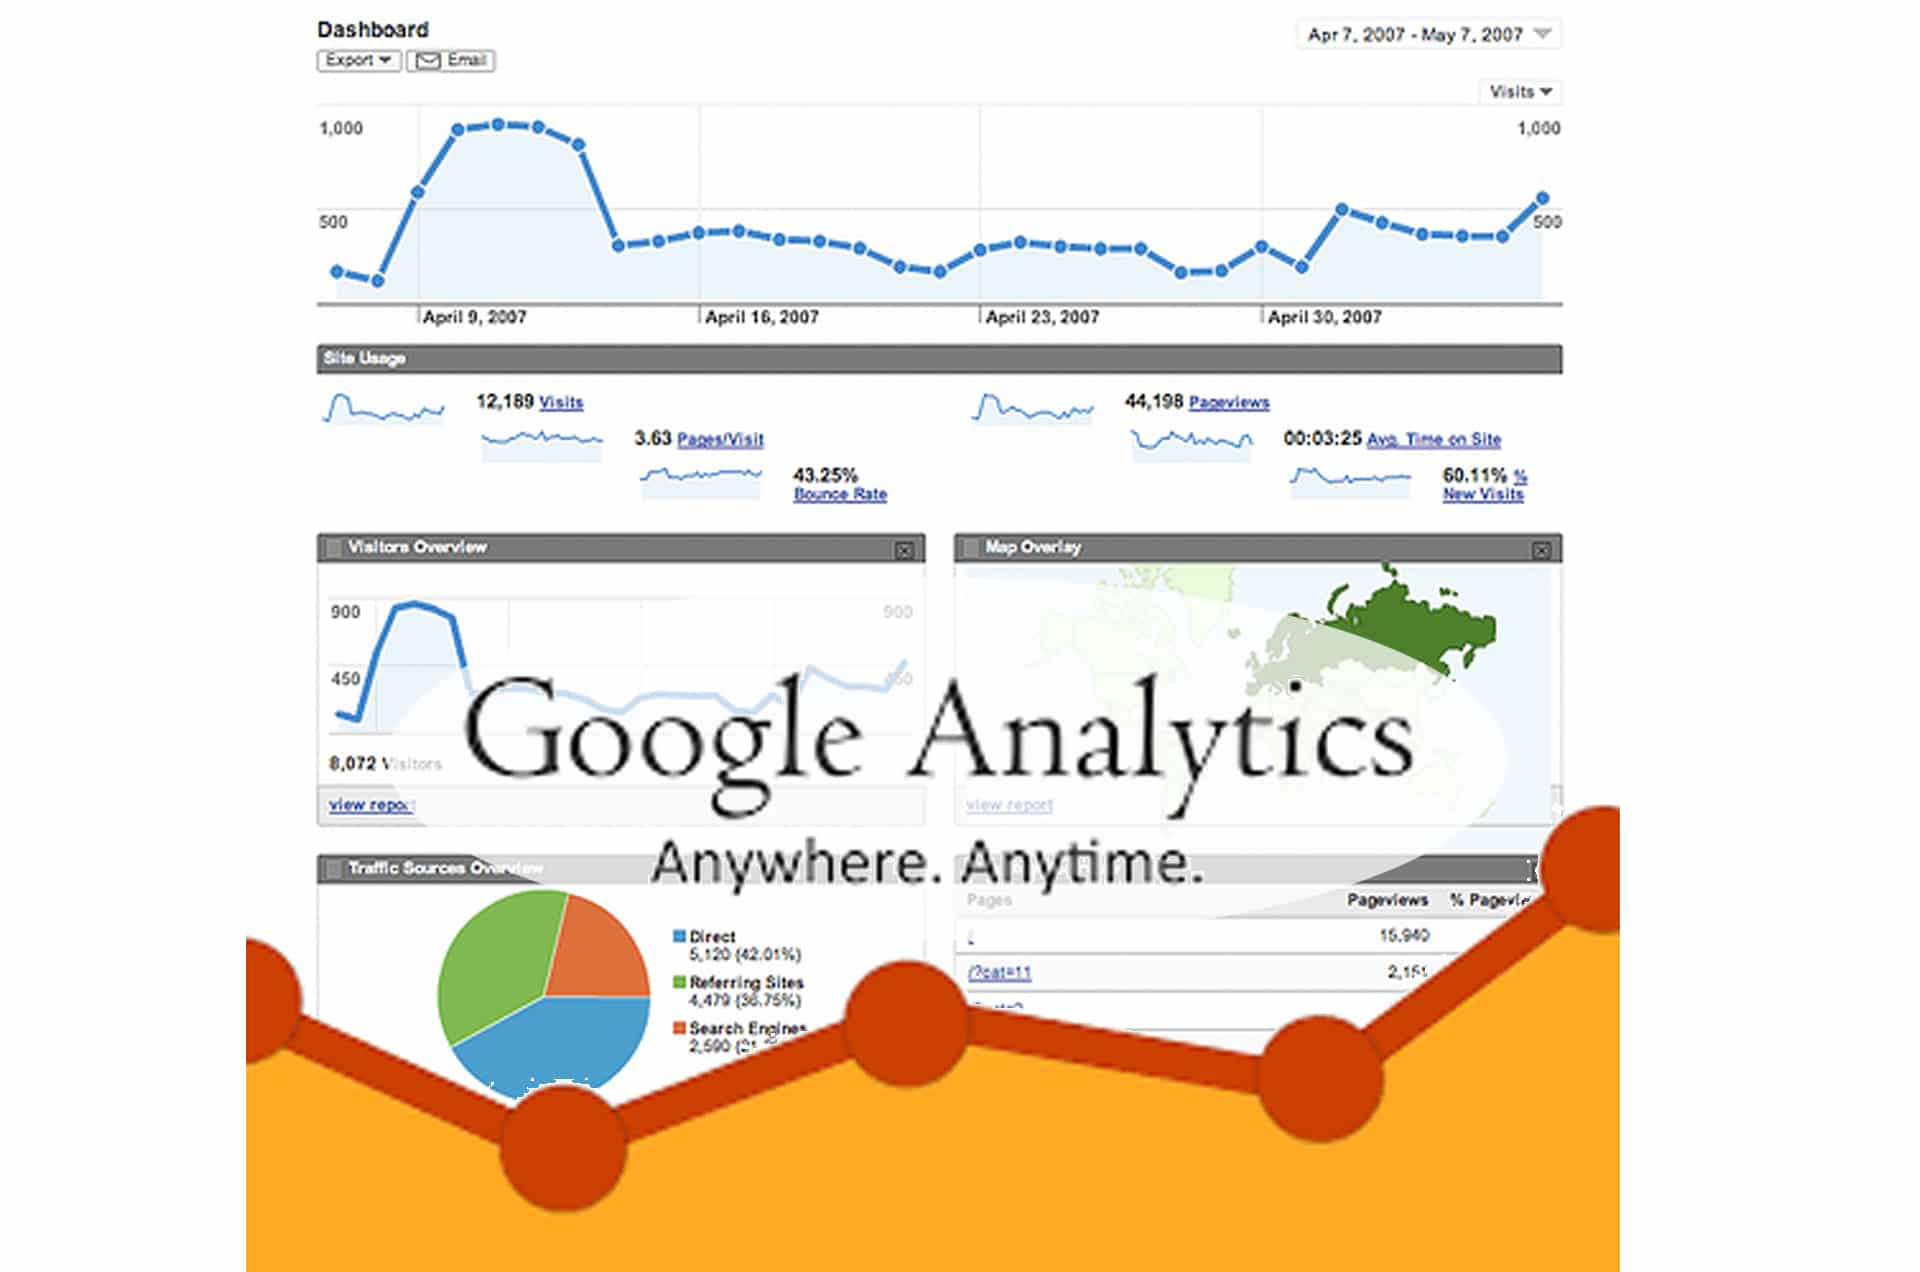 google analytics dashboard and logo